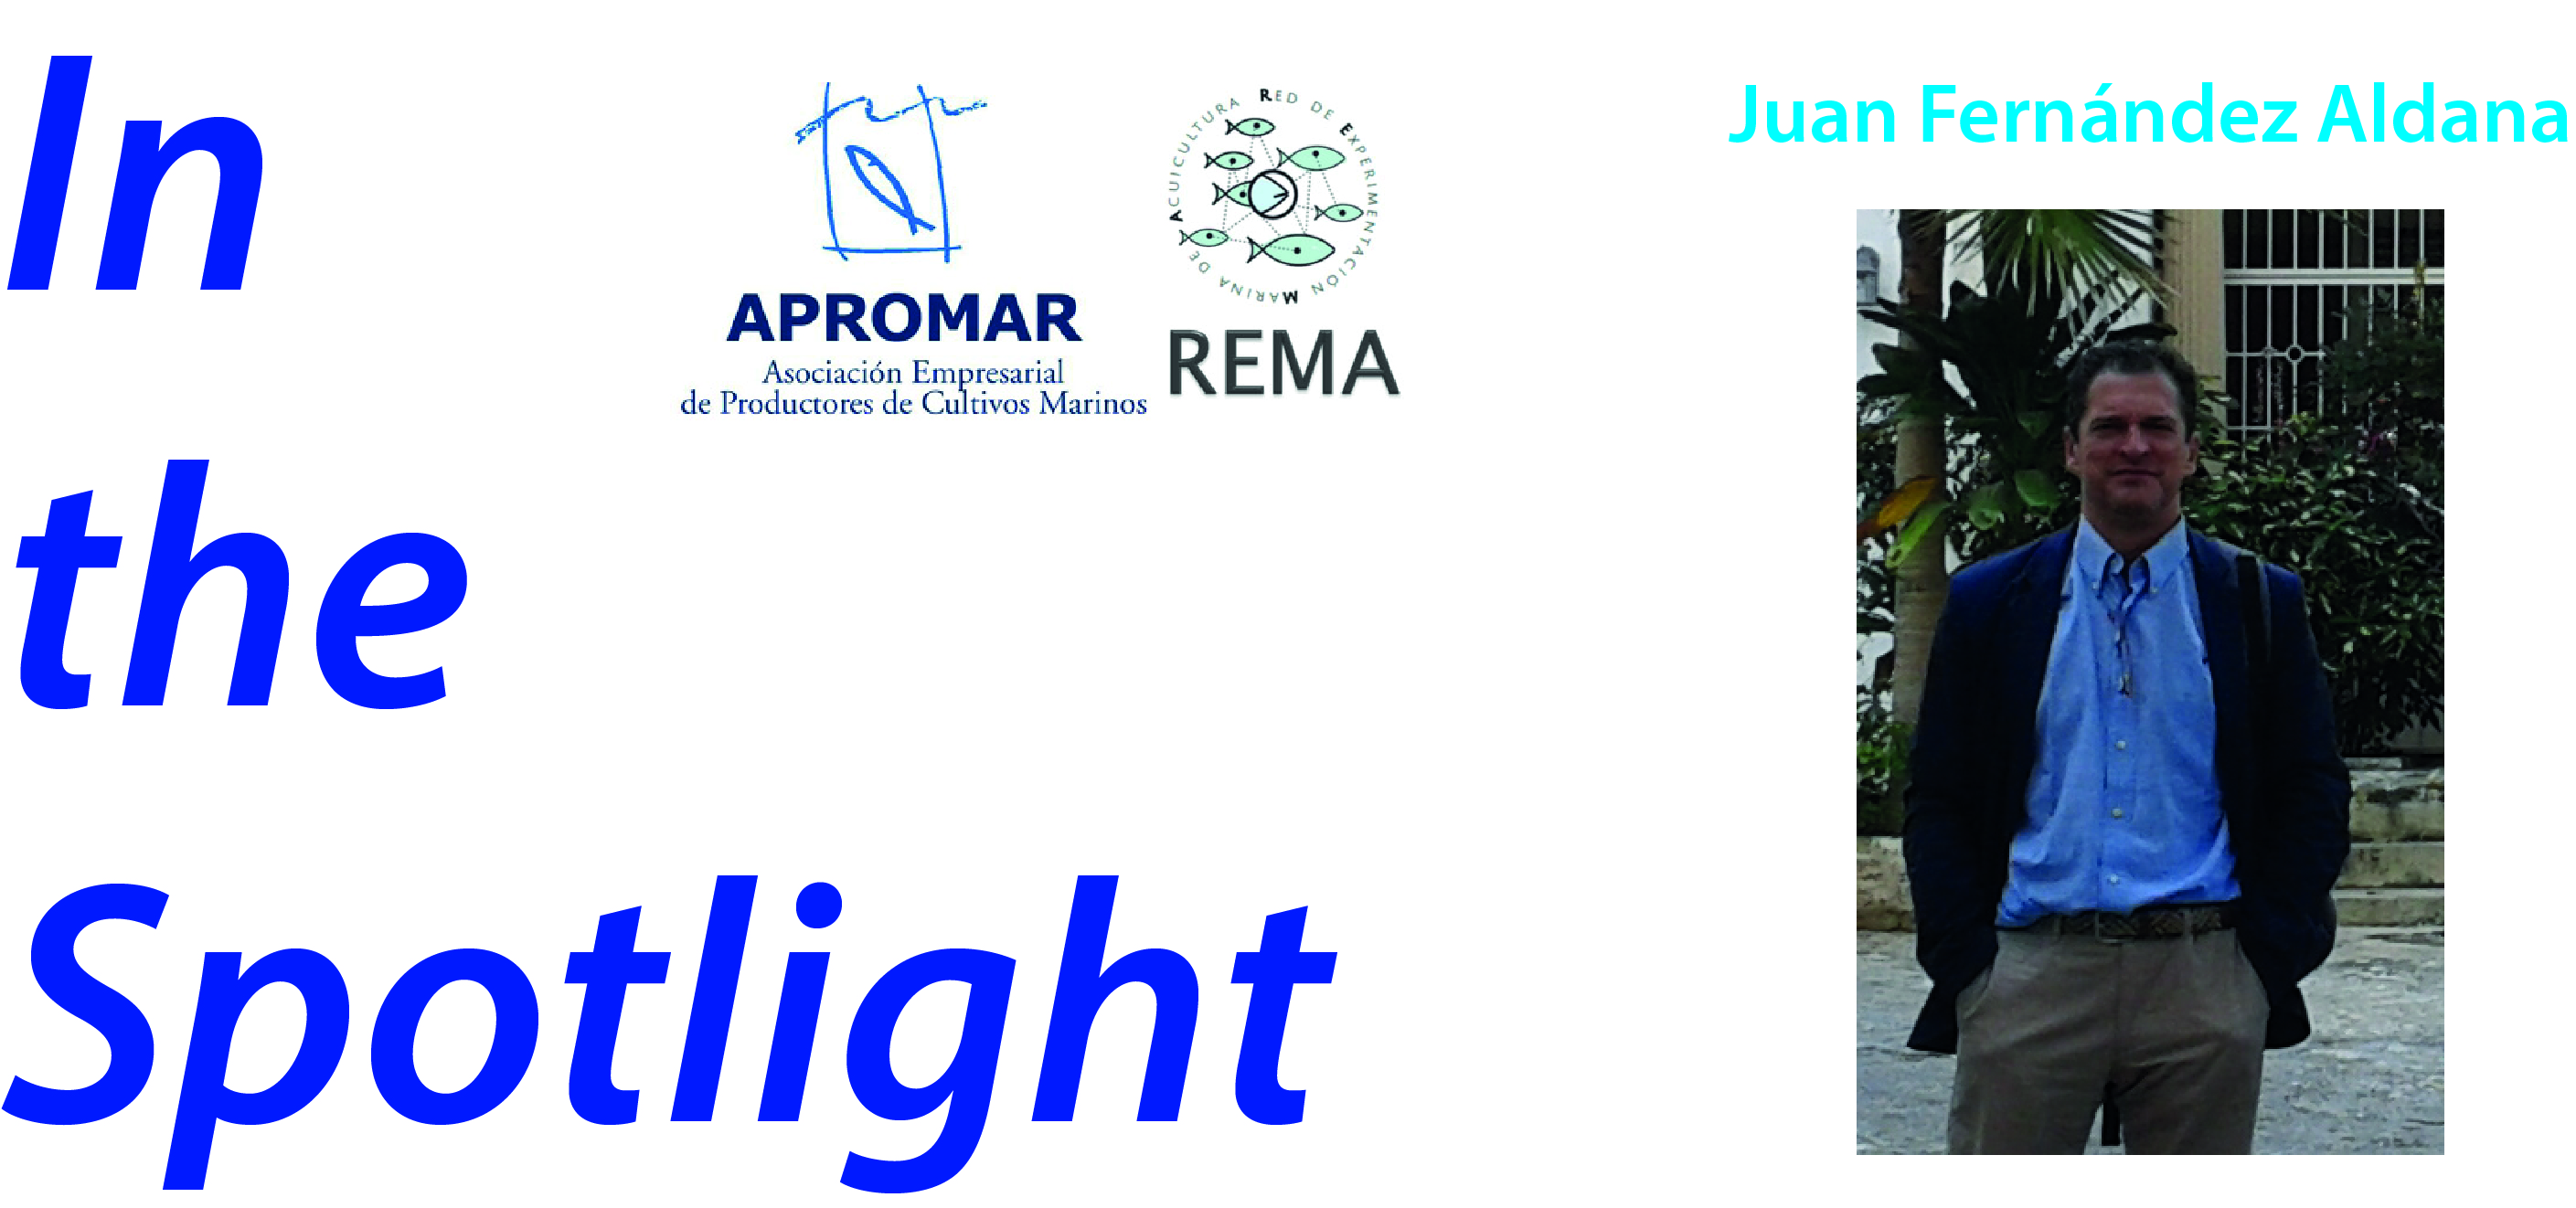 In the spotlight - Juan fernandez